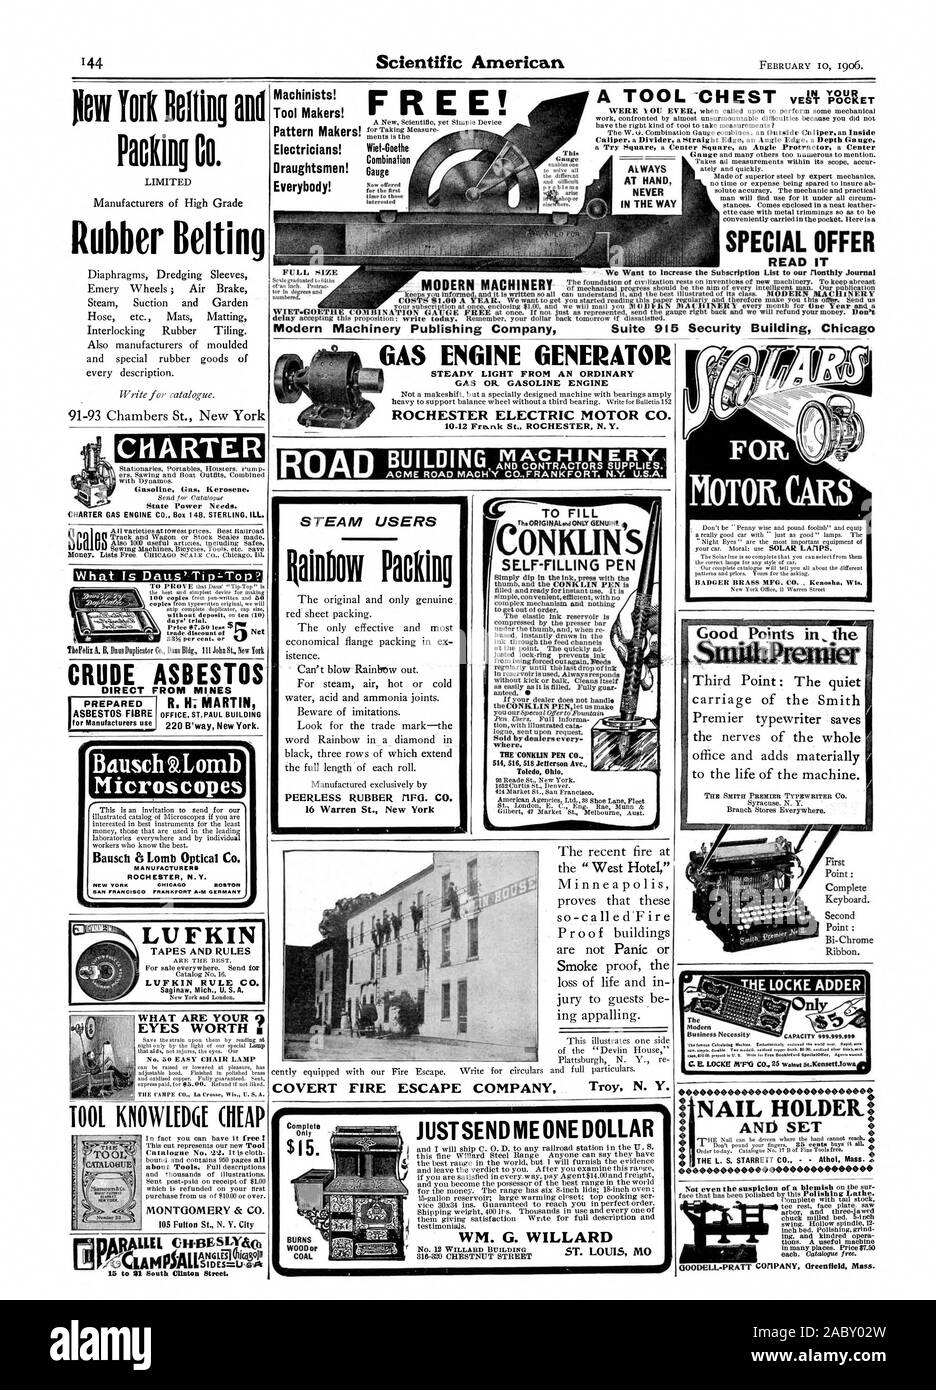 COVERT FIRE ESCAPE COMPANY Troy N. Y. Machinists! Tool Makers! Pattern Makers! Electricians! Draughtsmen! Everybody! Wiet-Goethe Combination Gauge FREE! AT HAND IN THE WAY SPECIAL OFFER READ IT Modern Machinery Publishing Company Suite 915 Security Building Chicag FULL SIZE GAS ENGINE GENERATOR STEADY LIGHT FROM AN ORDINARY GAS OR. GASOLINE ENGINE ROCHESTER ELECTRIC MOTOR CO. JUSTSEND ME ONE DOLLAR 316-320 CHESTNUT STREET $15. COAL CONKLIN S SELF-FILLING PEN The elastic Ink reservoir Is illk through the feed channels justed lock-ring prevents ink logue sent upon request. where. Toled Ohio Stock Photo